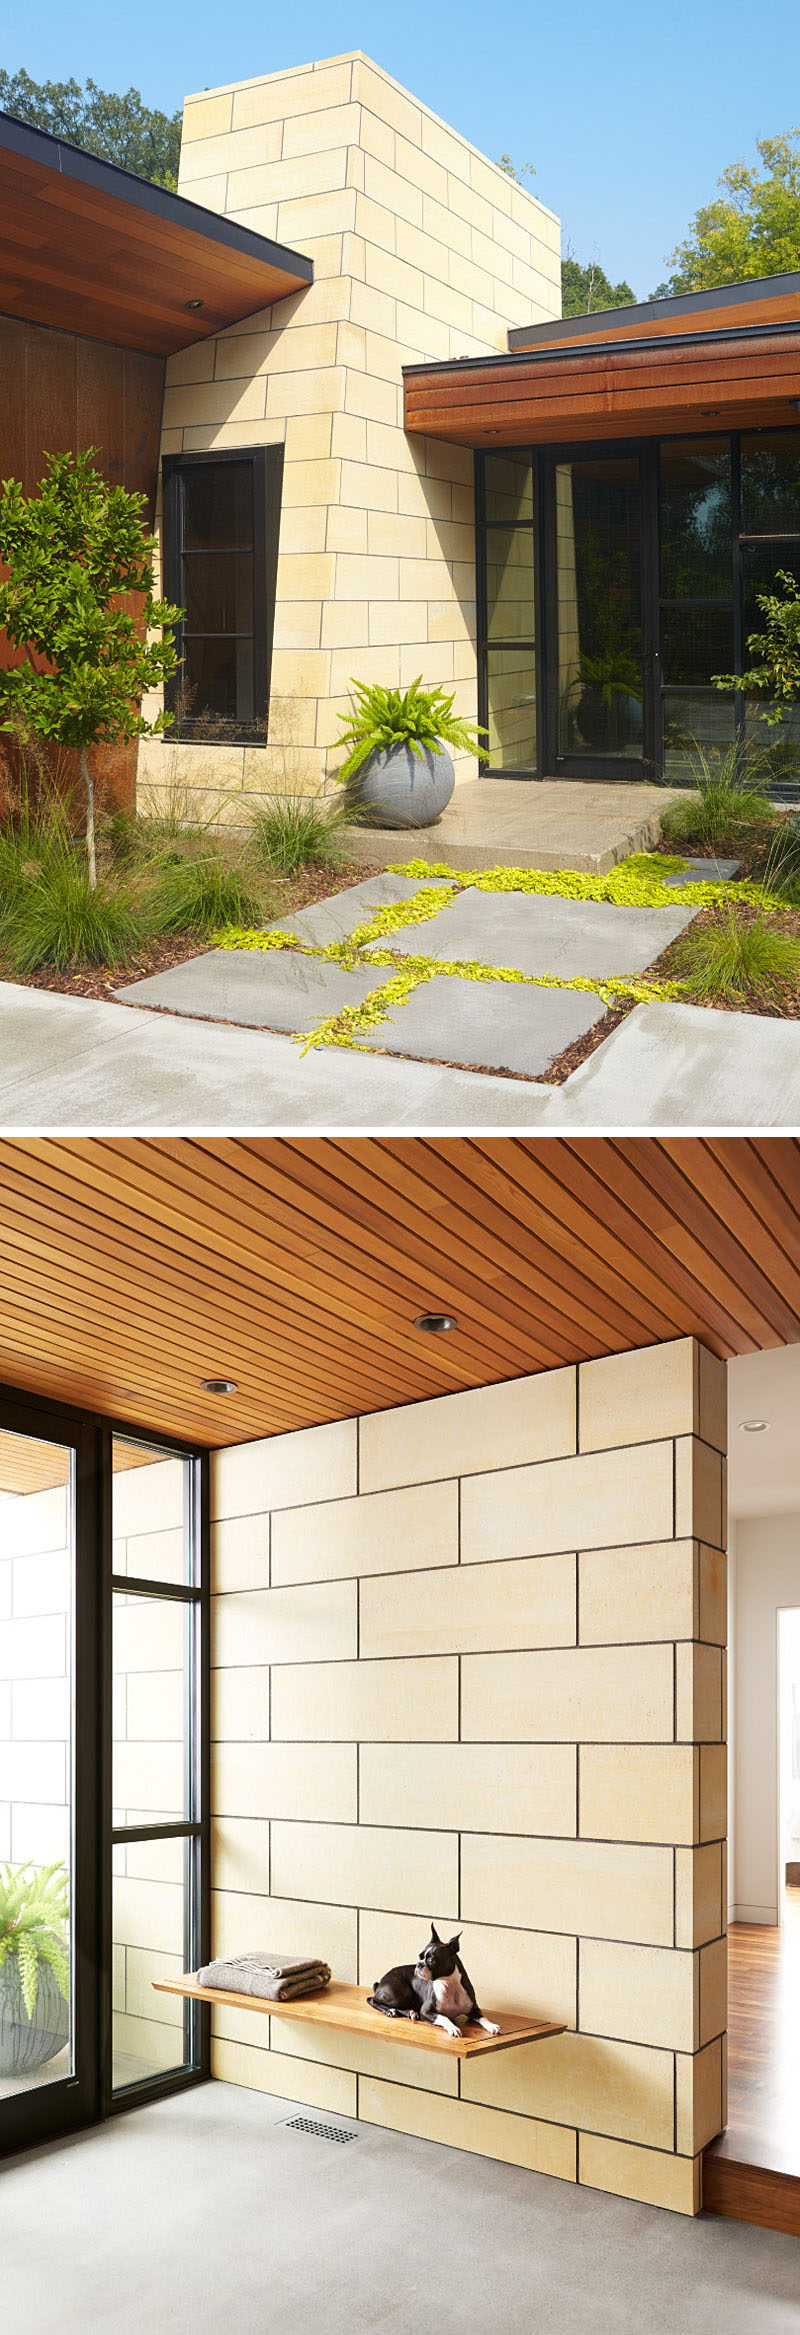 Stepping inside this modern ranch house, the materials from exterior of the home are also used on the interior, like in the entryway, where a floating bench is affixed to a limestone wall. #EntryWay #InteriorDesign